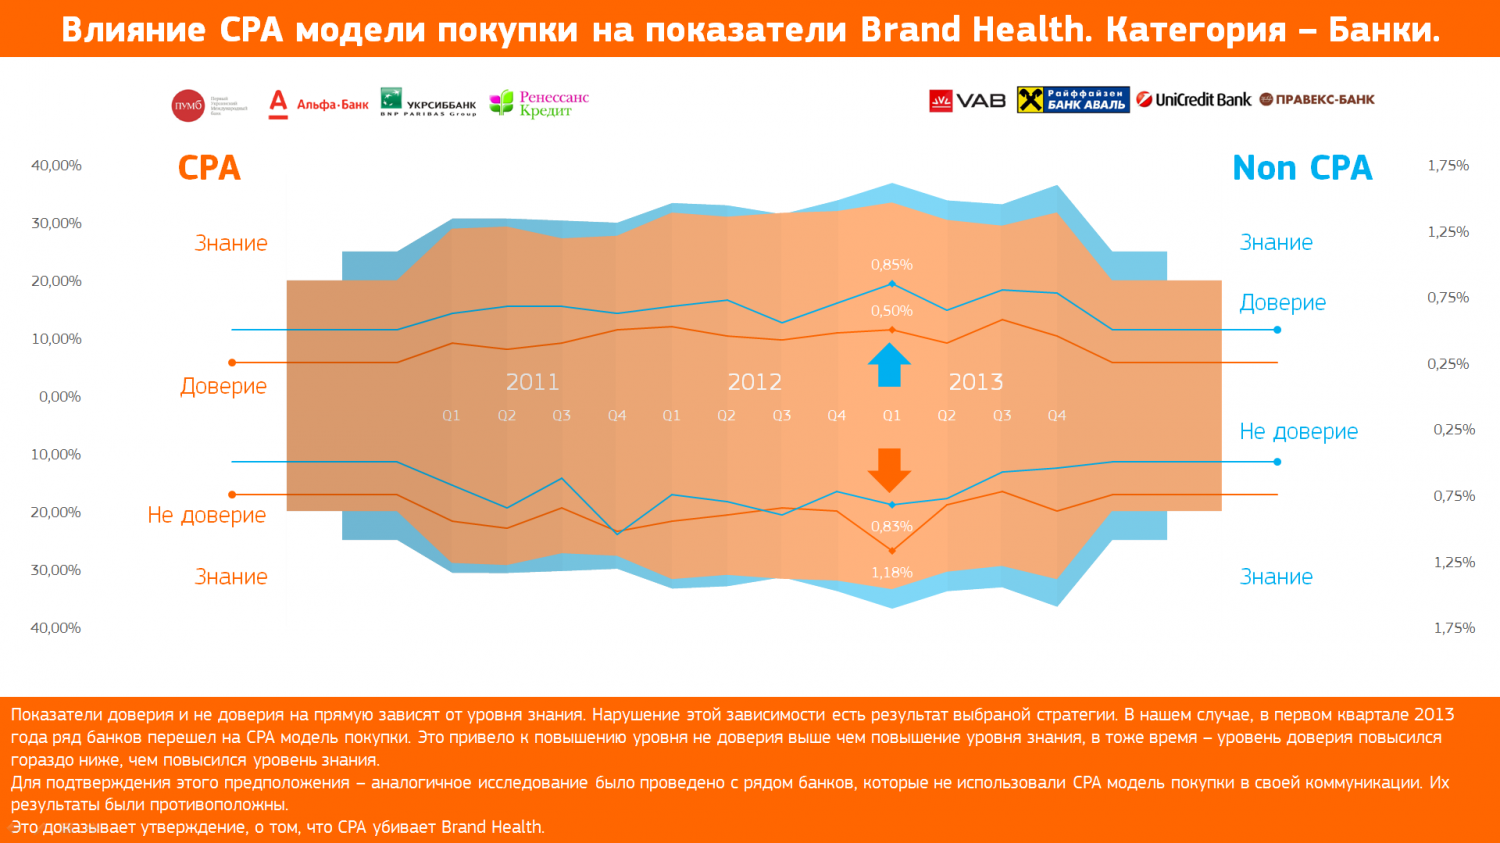 How CPA effects to Brand Health (Banks, Ukraine) Infographic